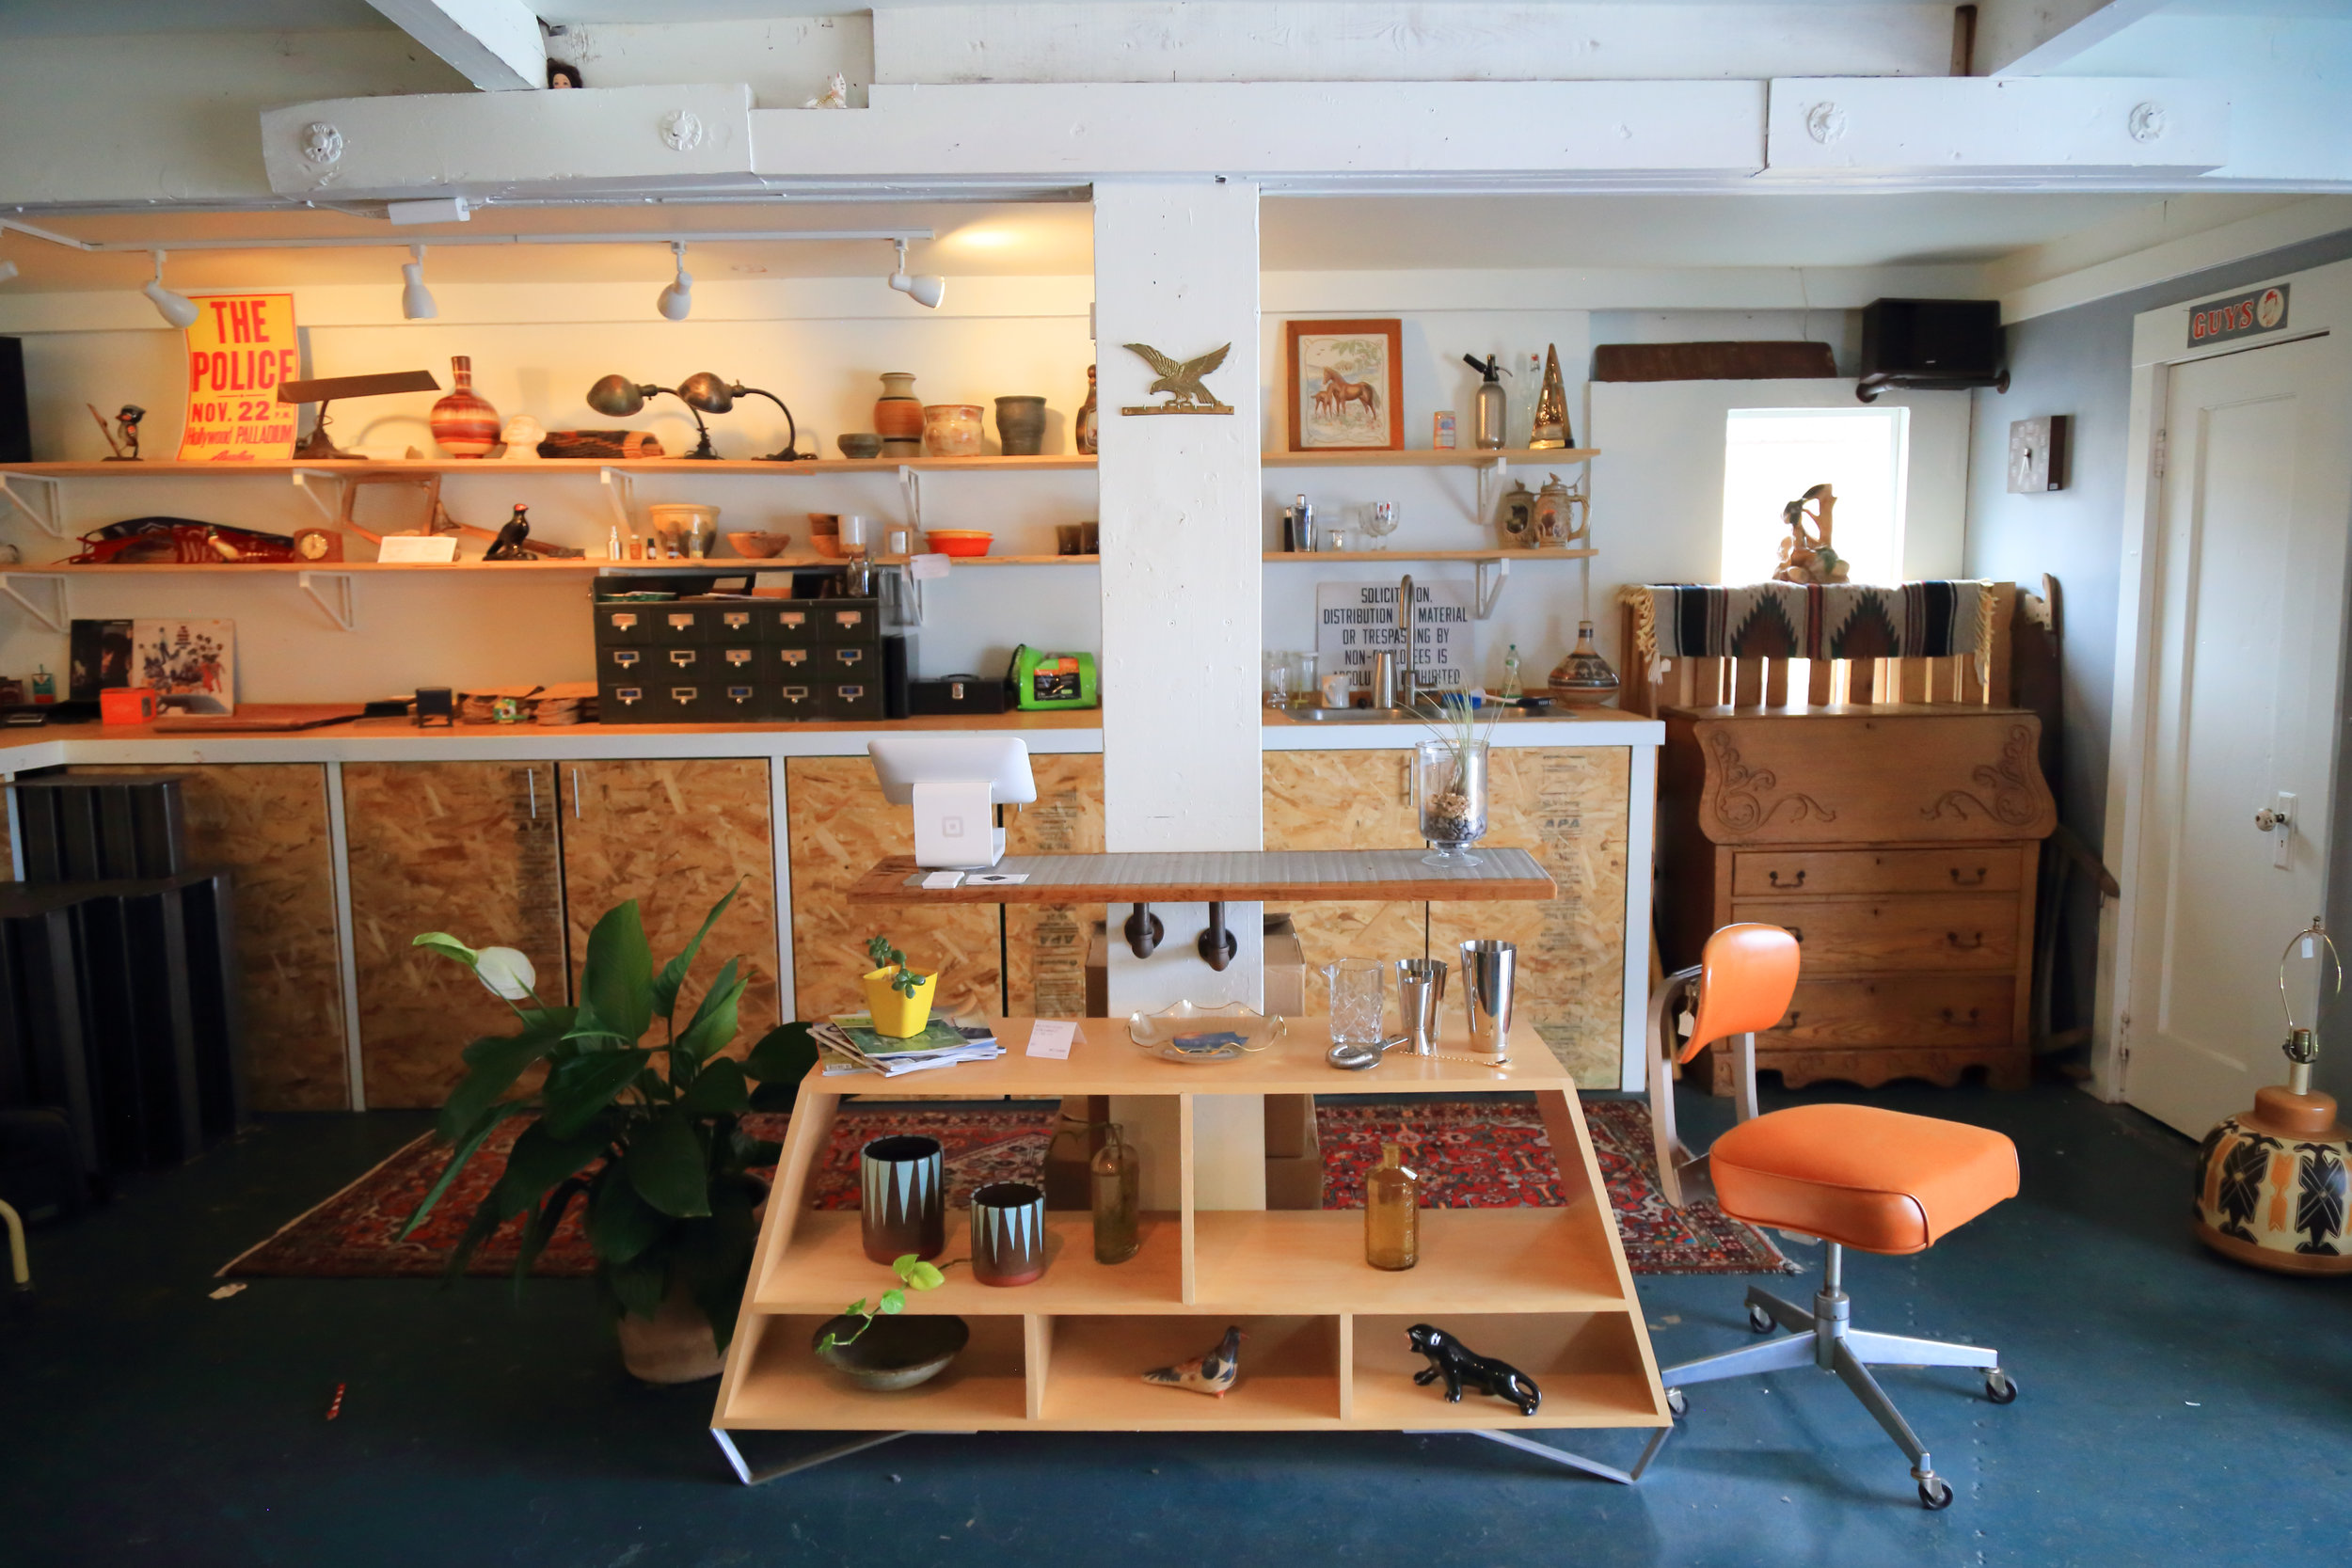 Built-in workshop blends into the rest of the room